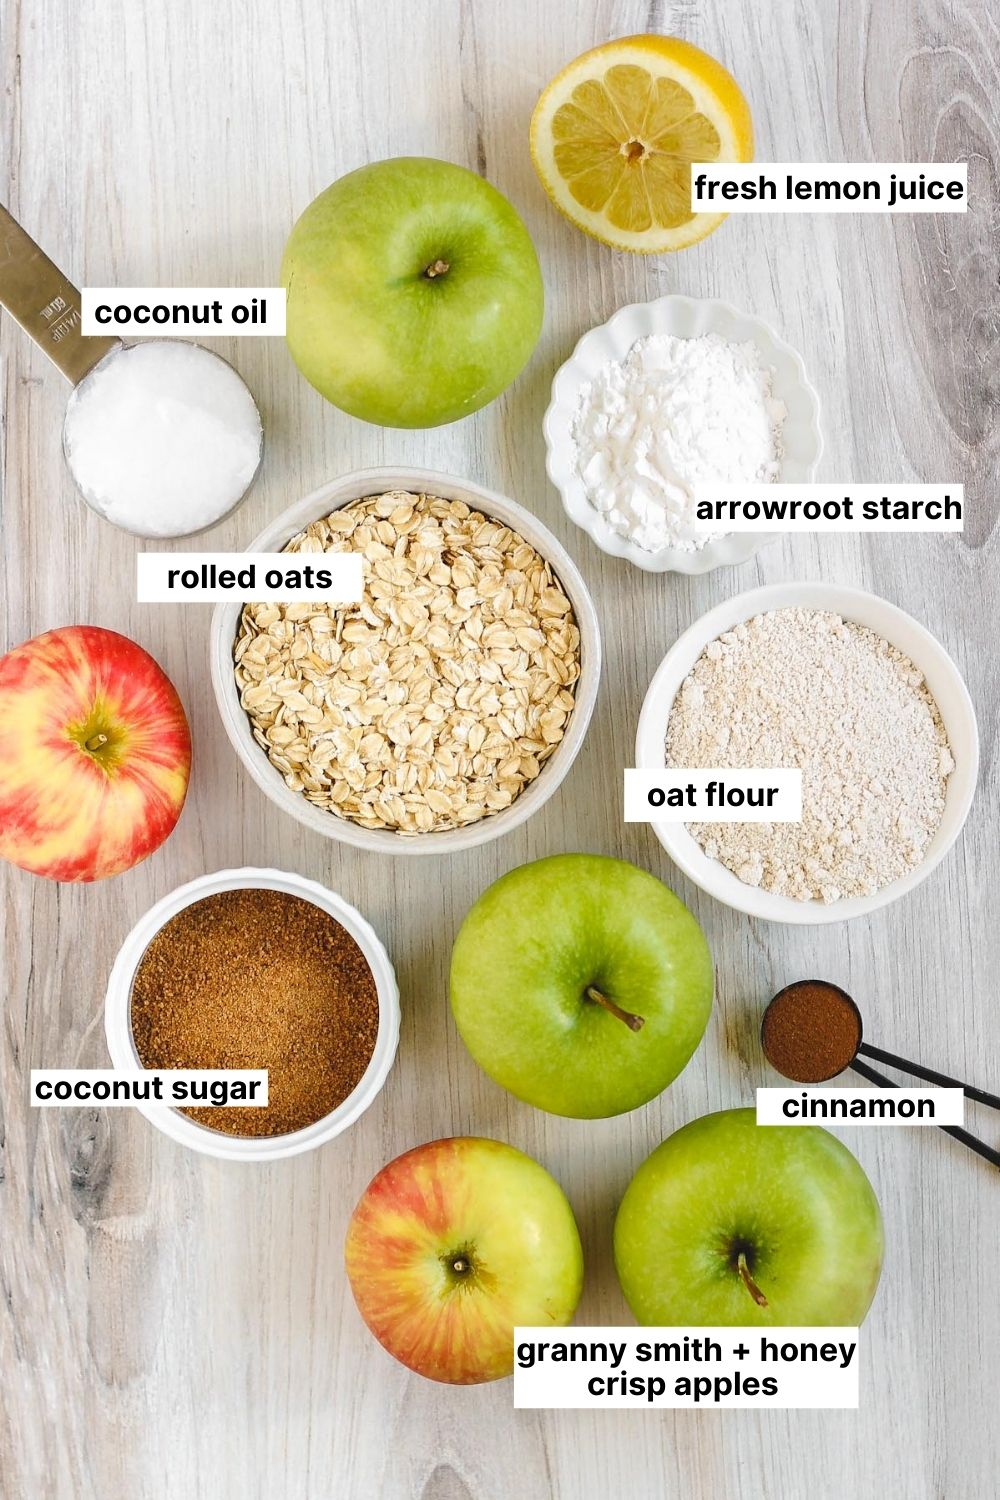 labeled ingredients that are used for this gluten free apple crisp recipe.